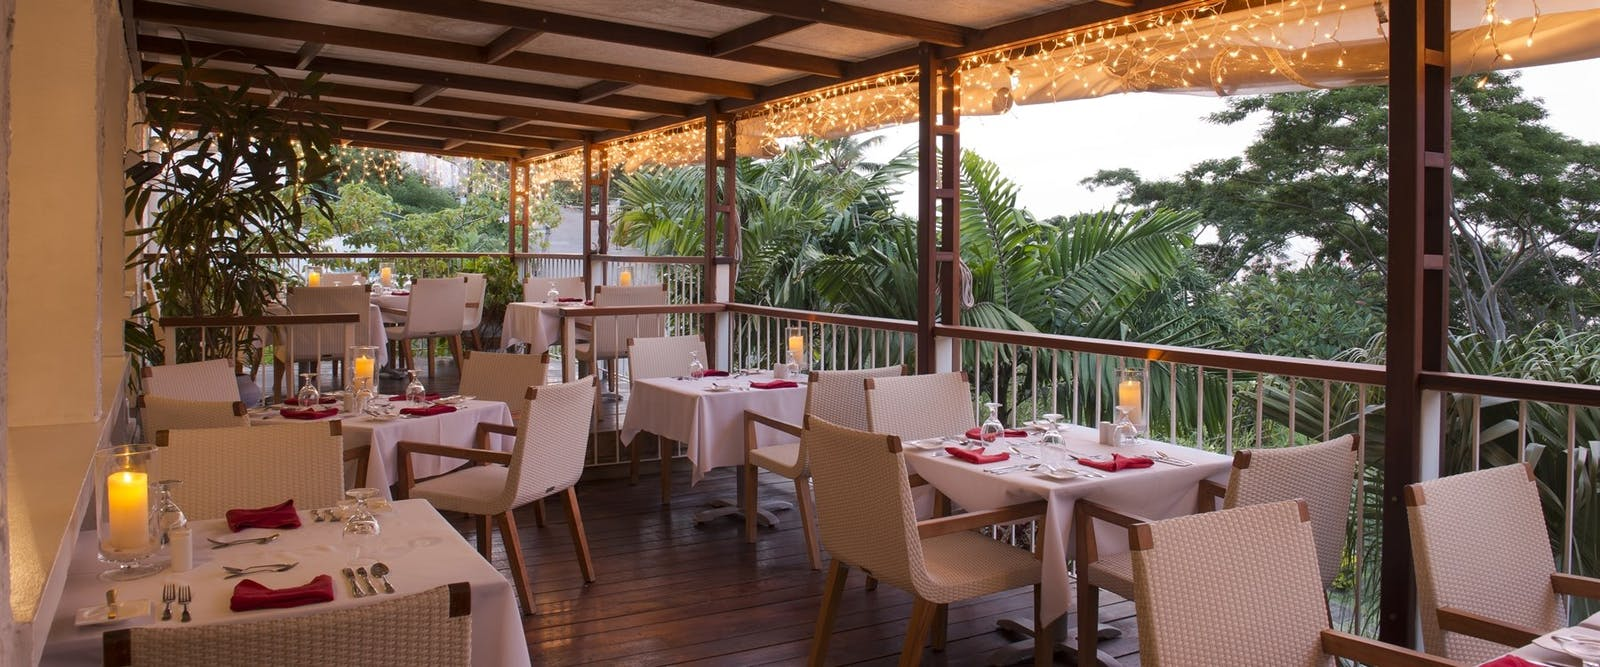 Restaurant at Mount Cinnamon, Grenada